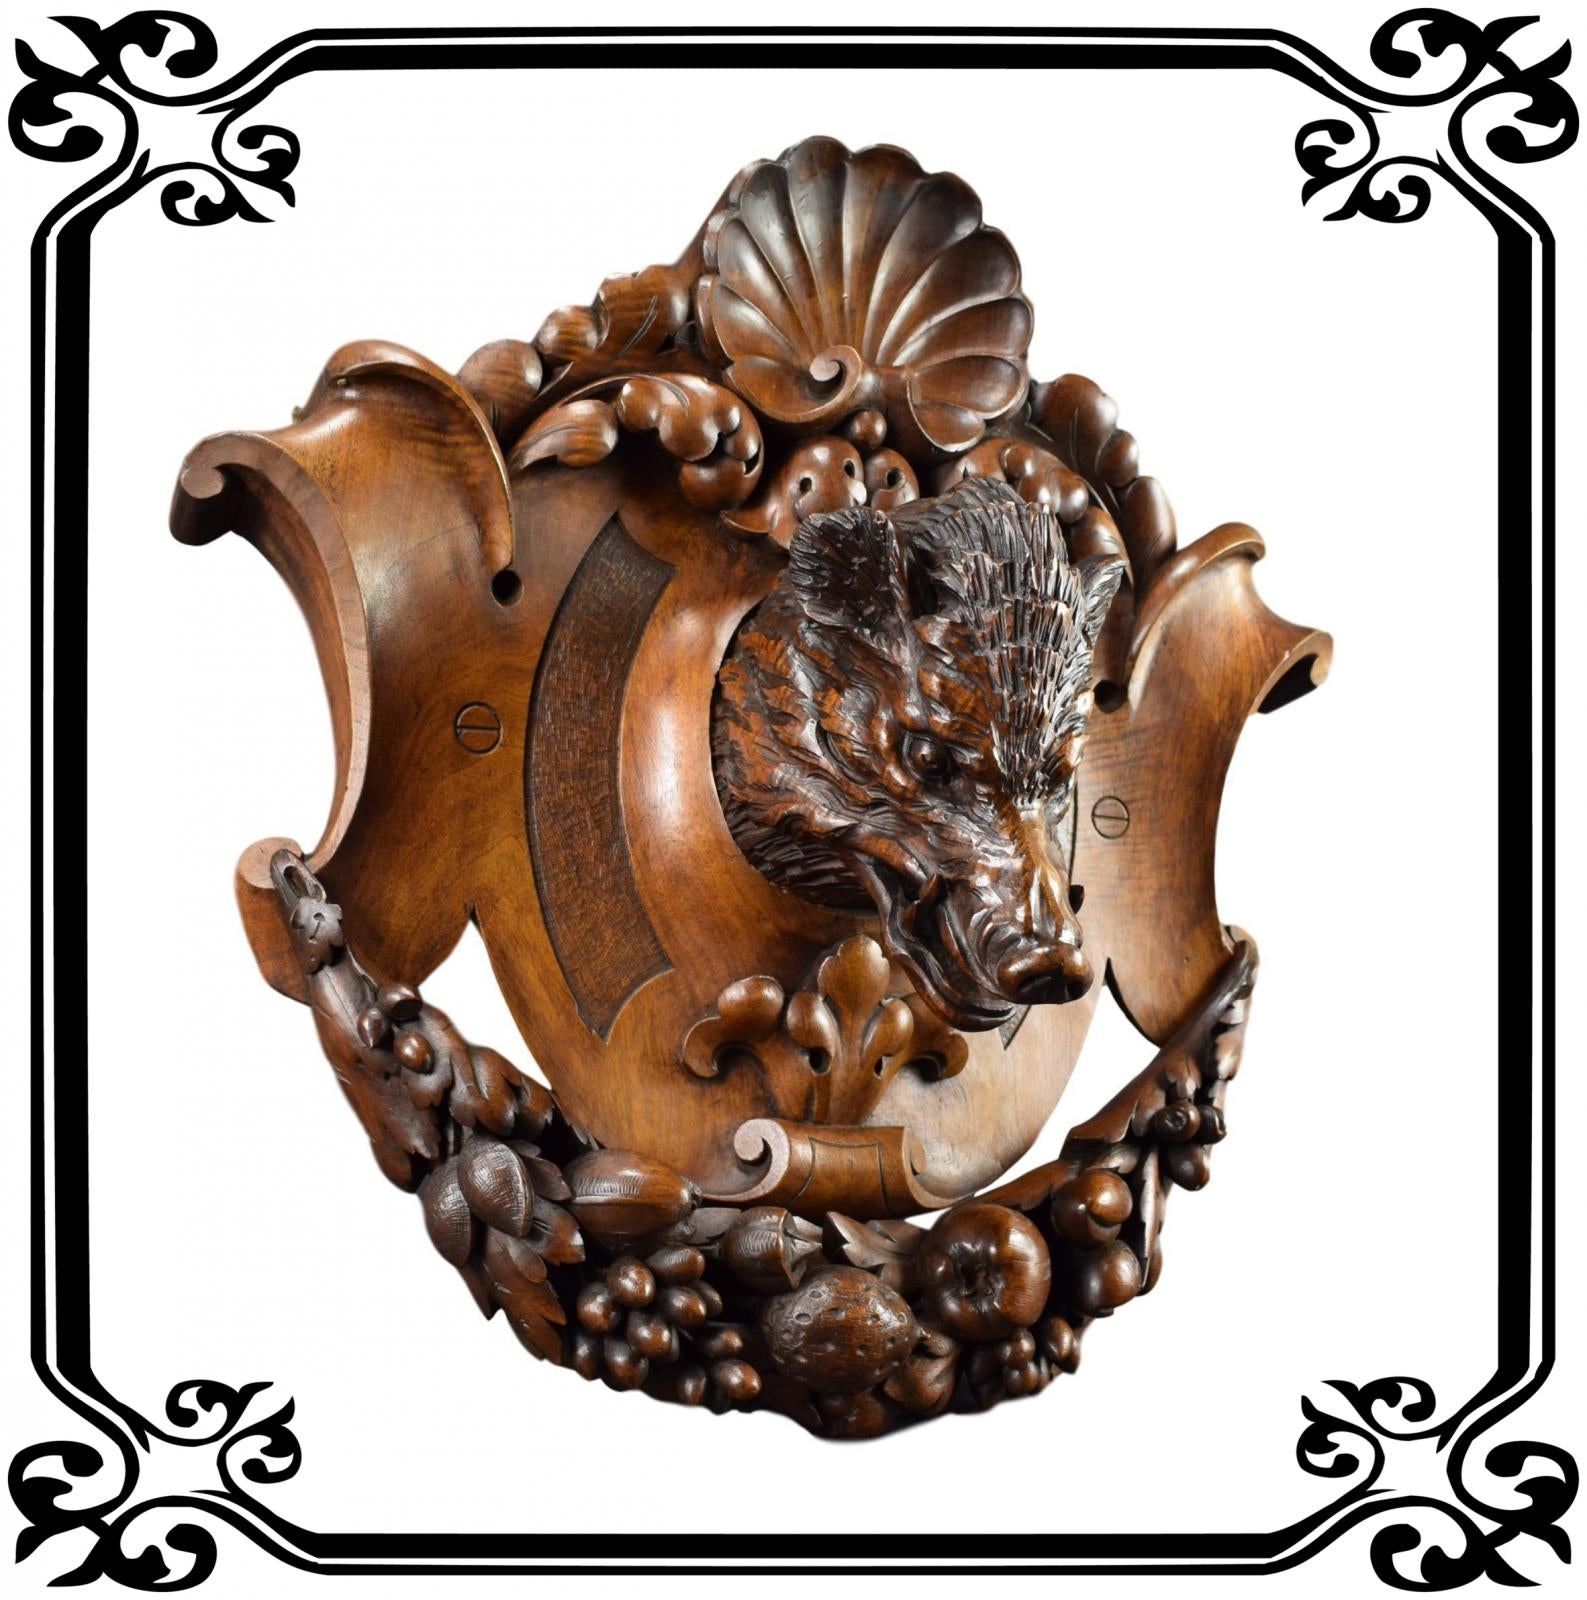 Large Hunting Trophy Black Forest - Charmantiques